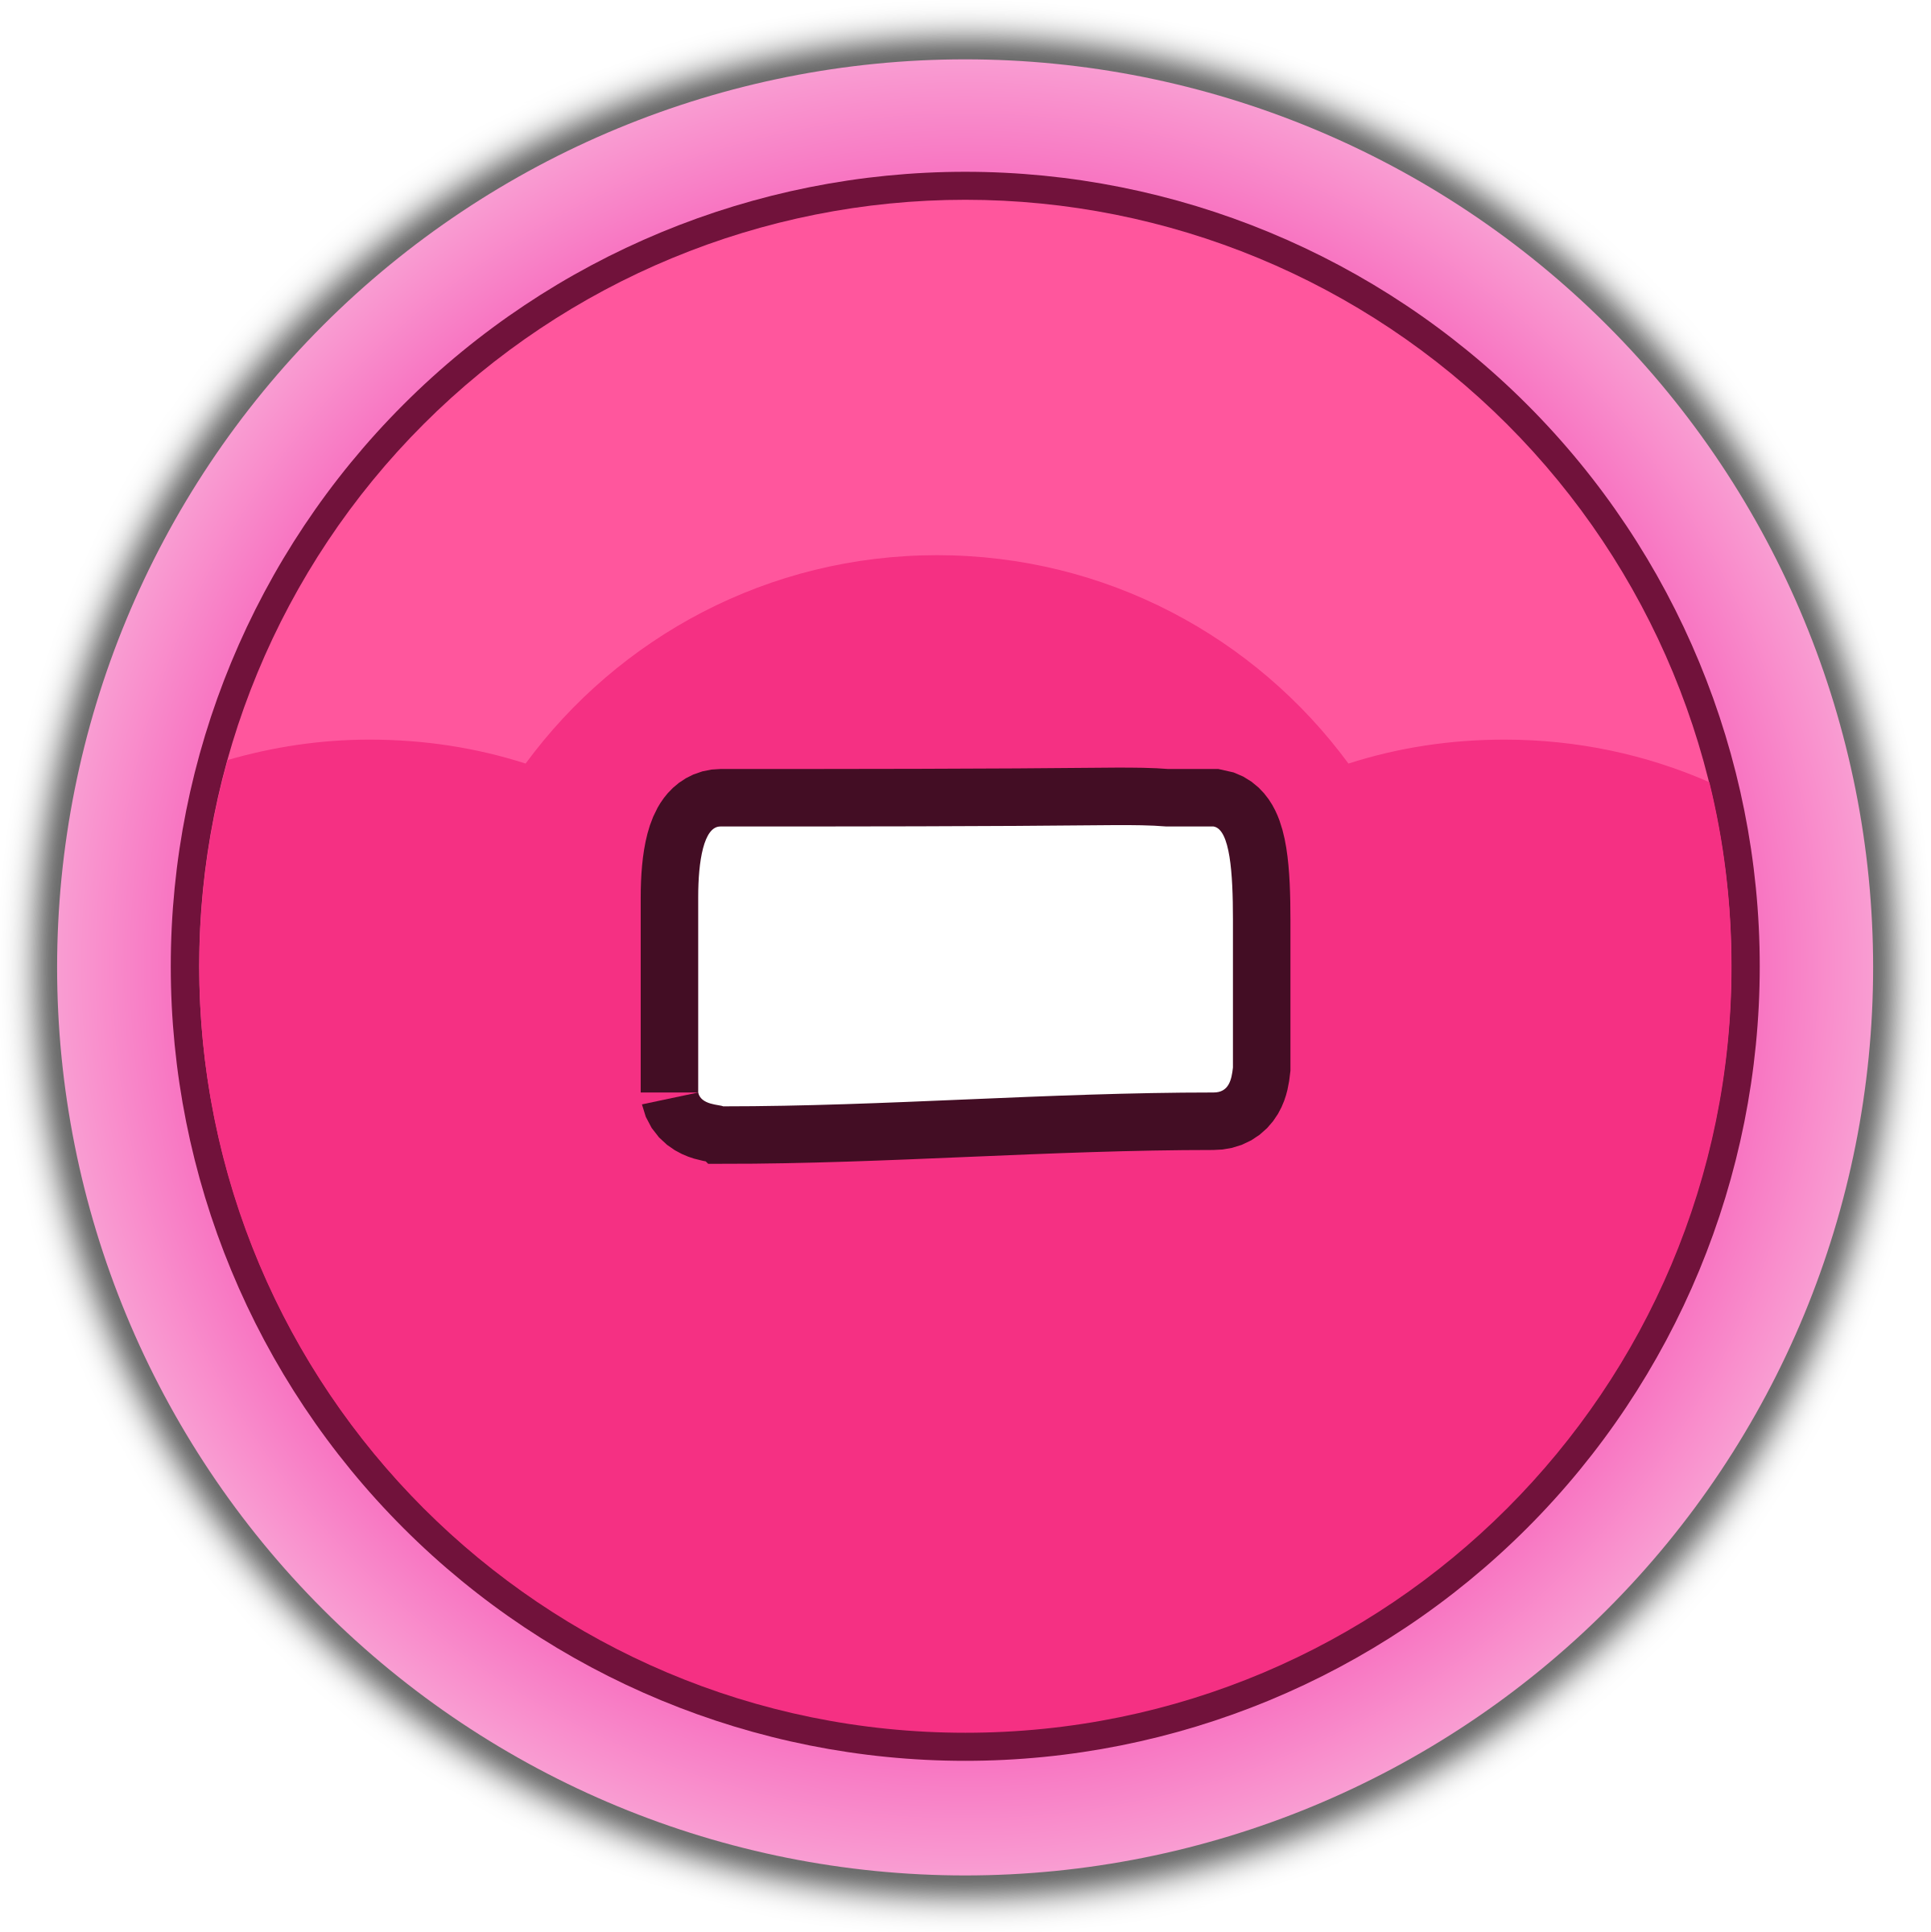 pink button minus by qubodup